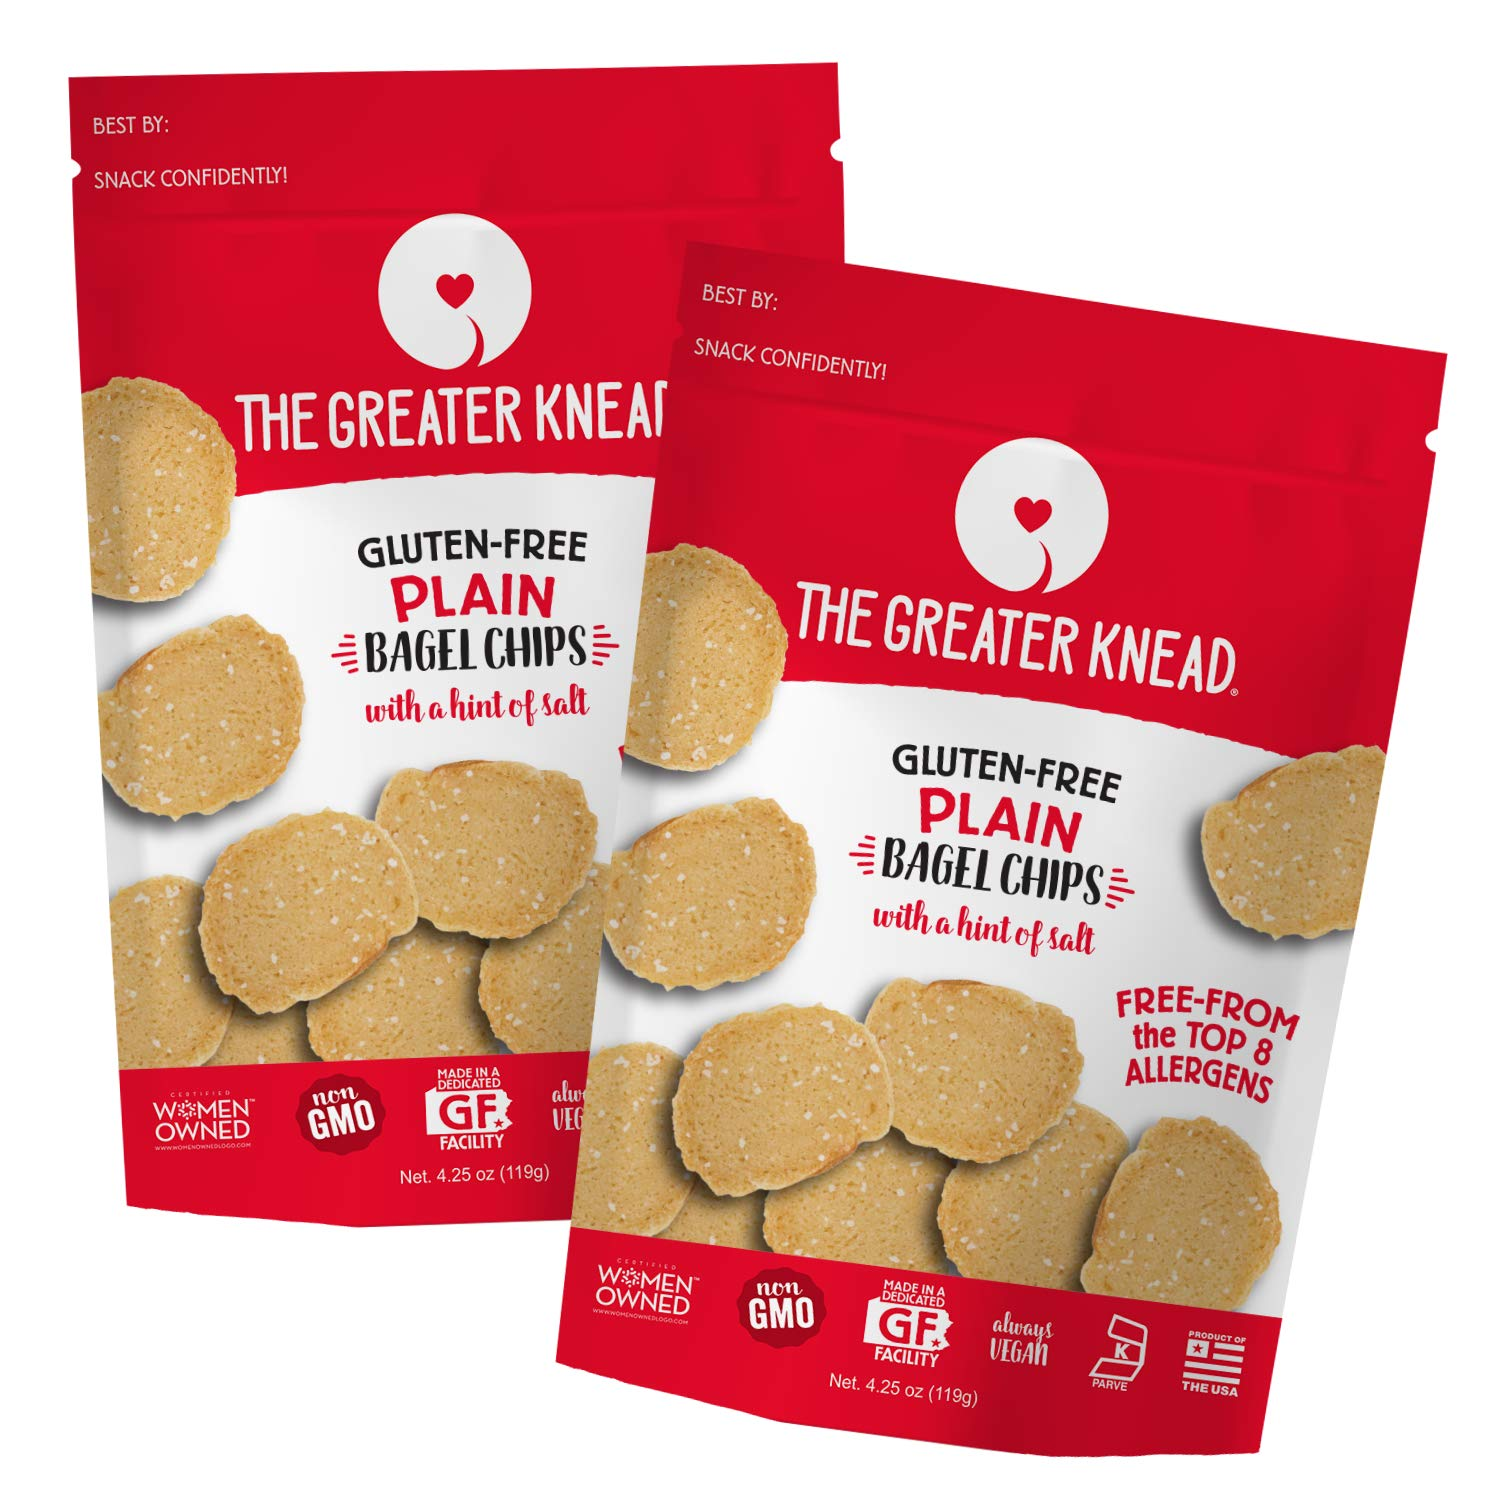 Greater Knead Gluten Free Bagel Chips - Plain, Vegan, non-GMO, Free of Wheat, Nuts, Soy, Peanuts, Tree Nuts (2 Bags) by The Greater Knead